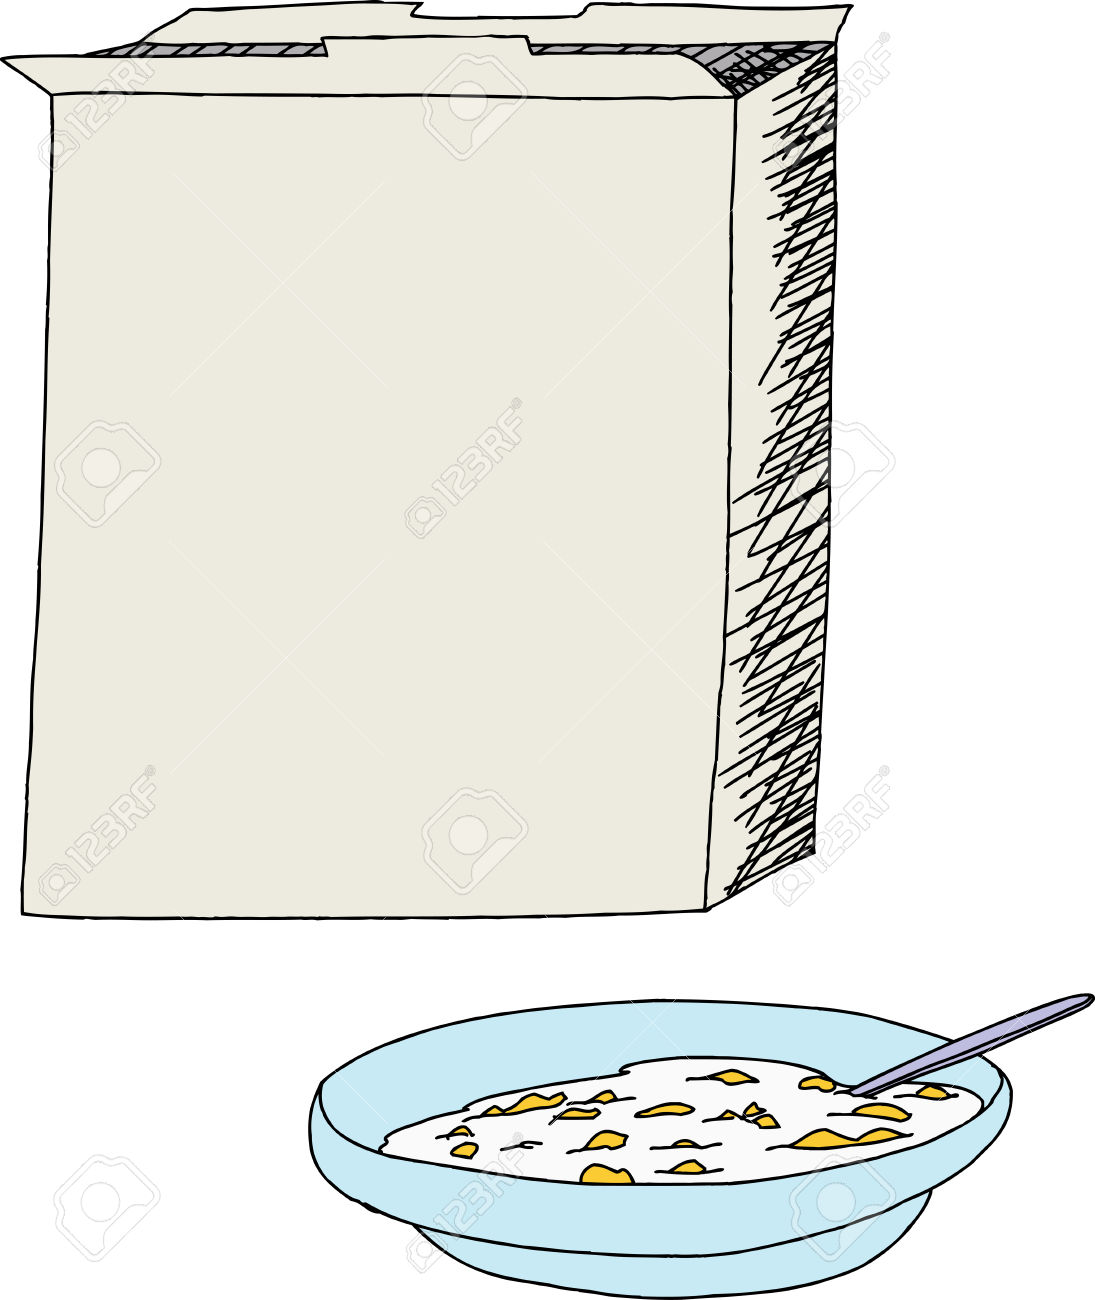 cereal box: Open cereal box with bowl of-cereal box: Open cereal box with bowl of corn flakes over white Illustration-16